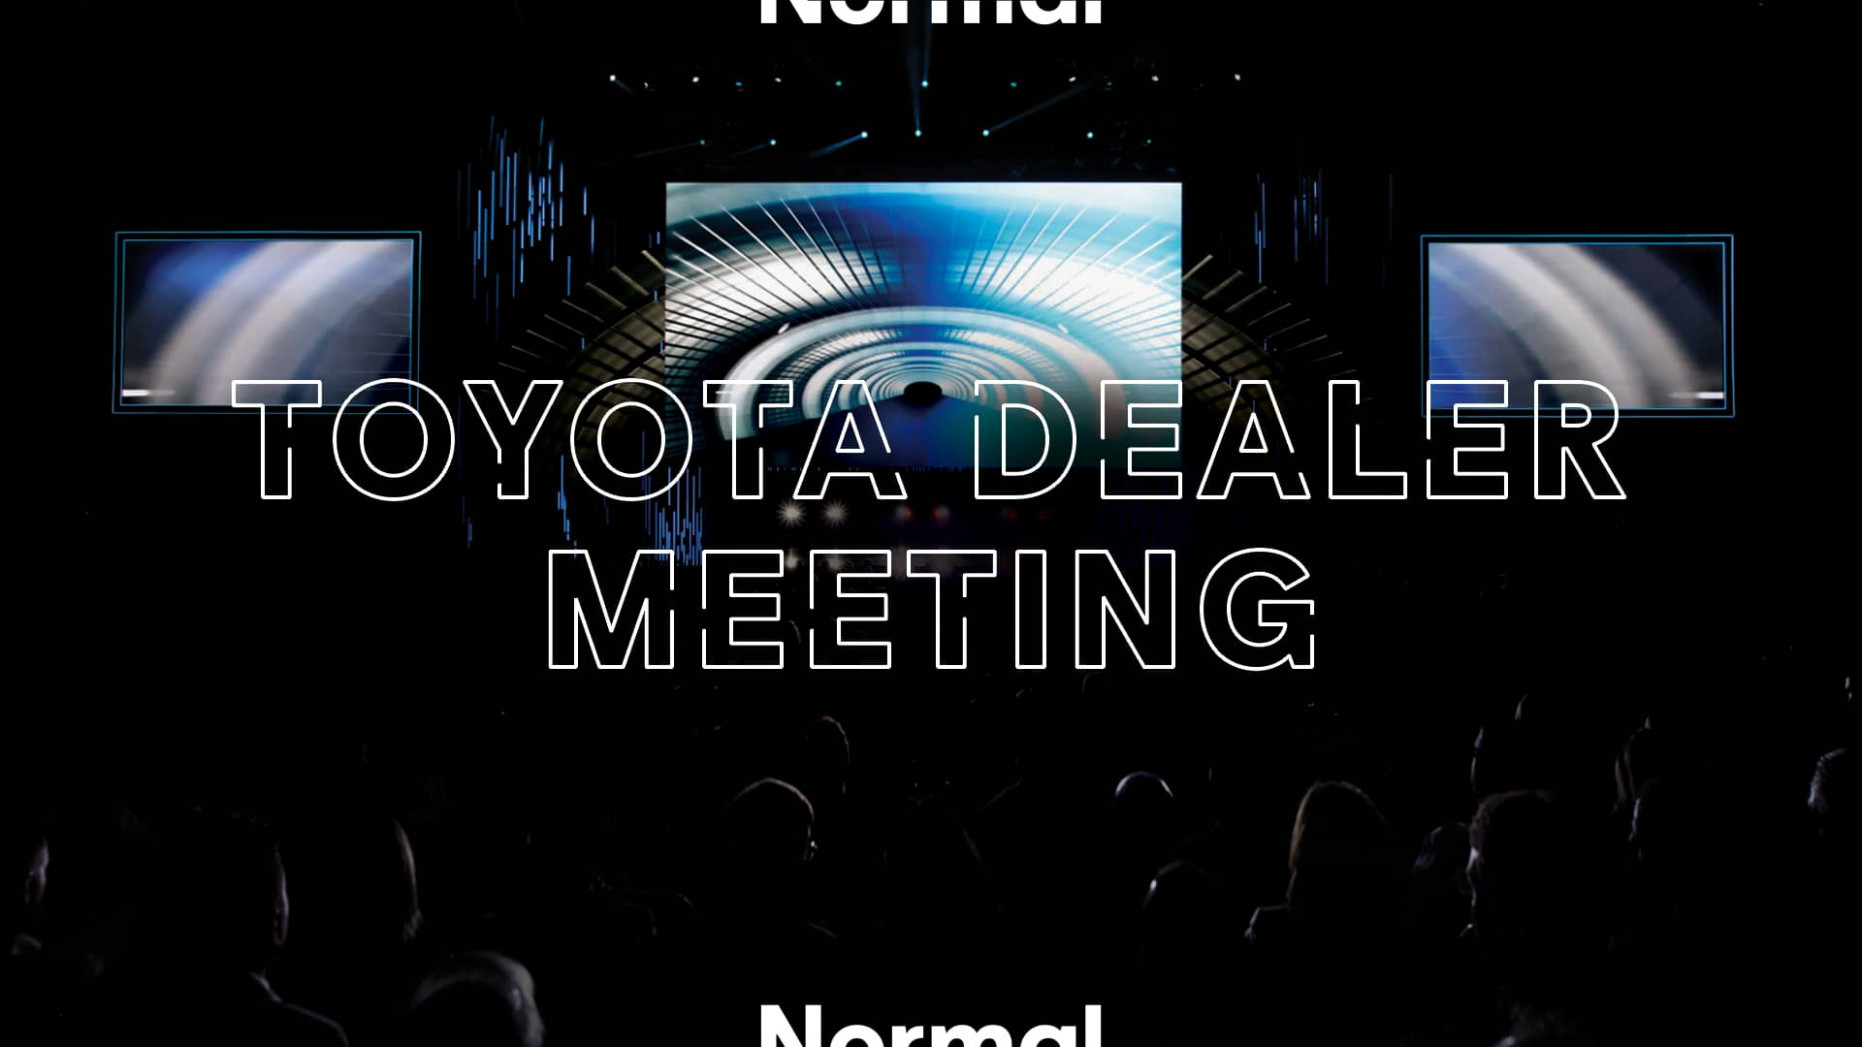 Toyota Dealer Meeting